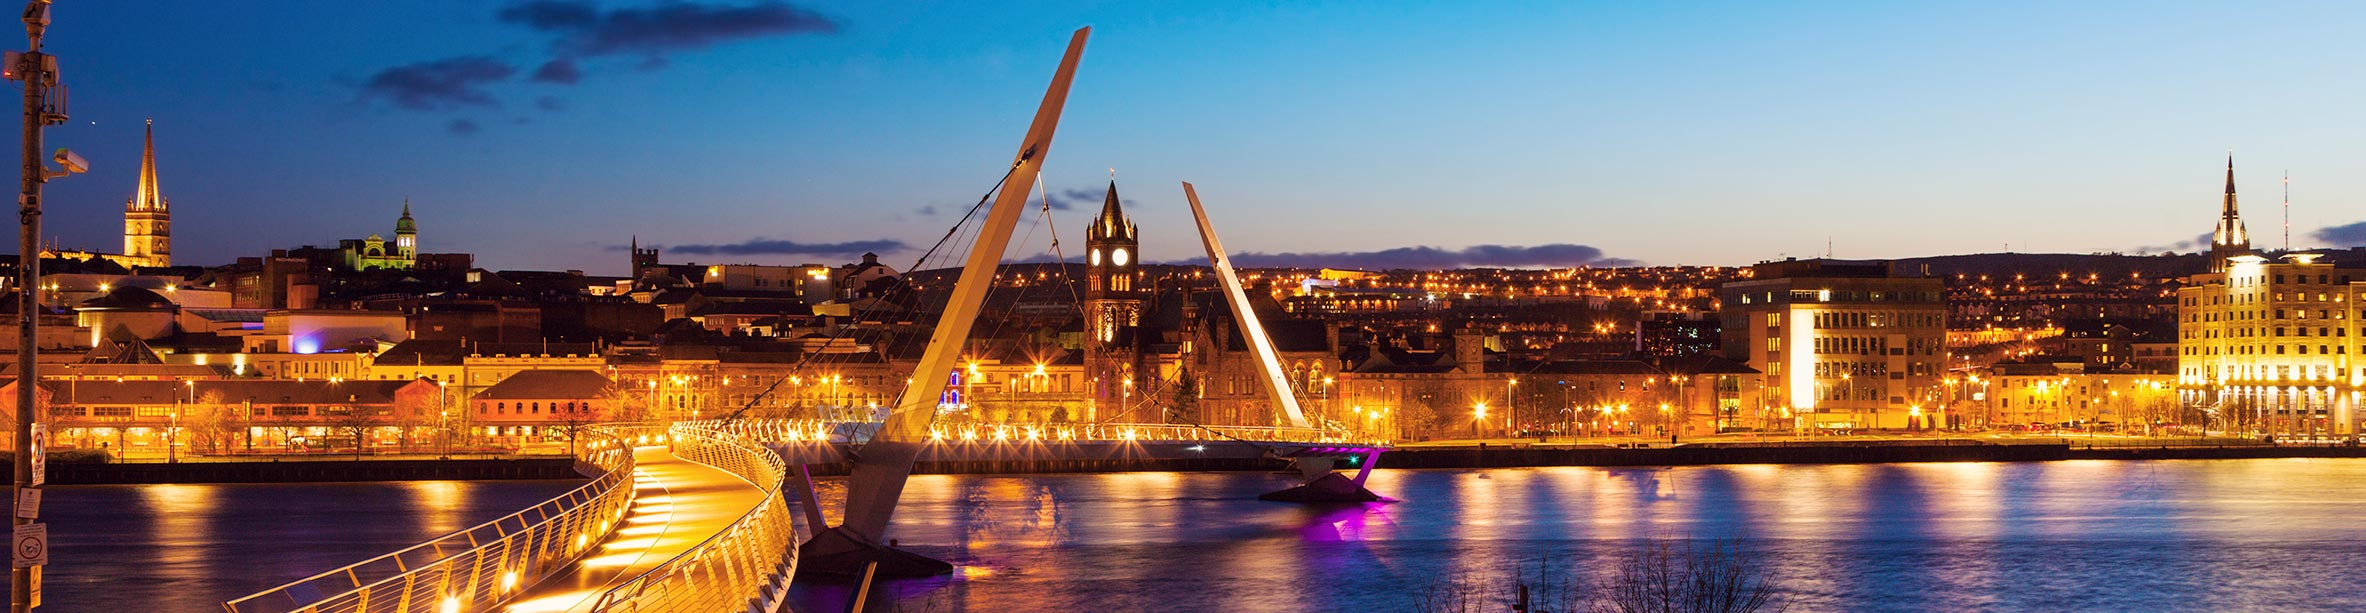 Dublino: Peace Bridge di notte